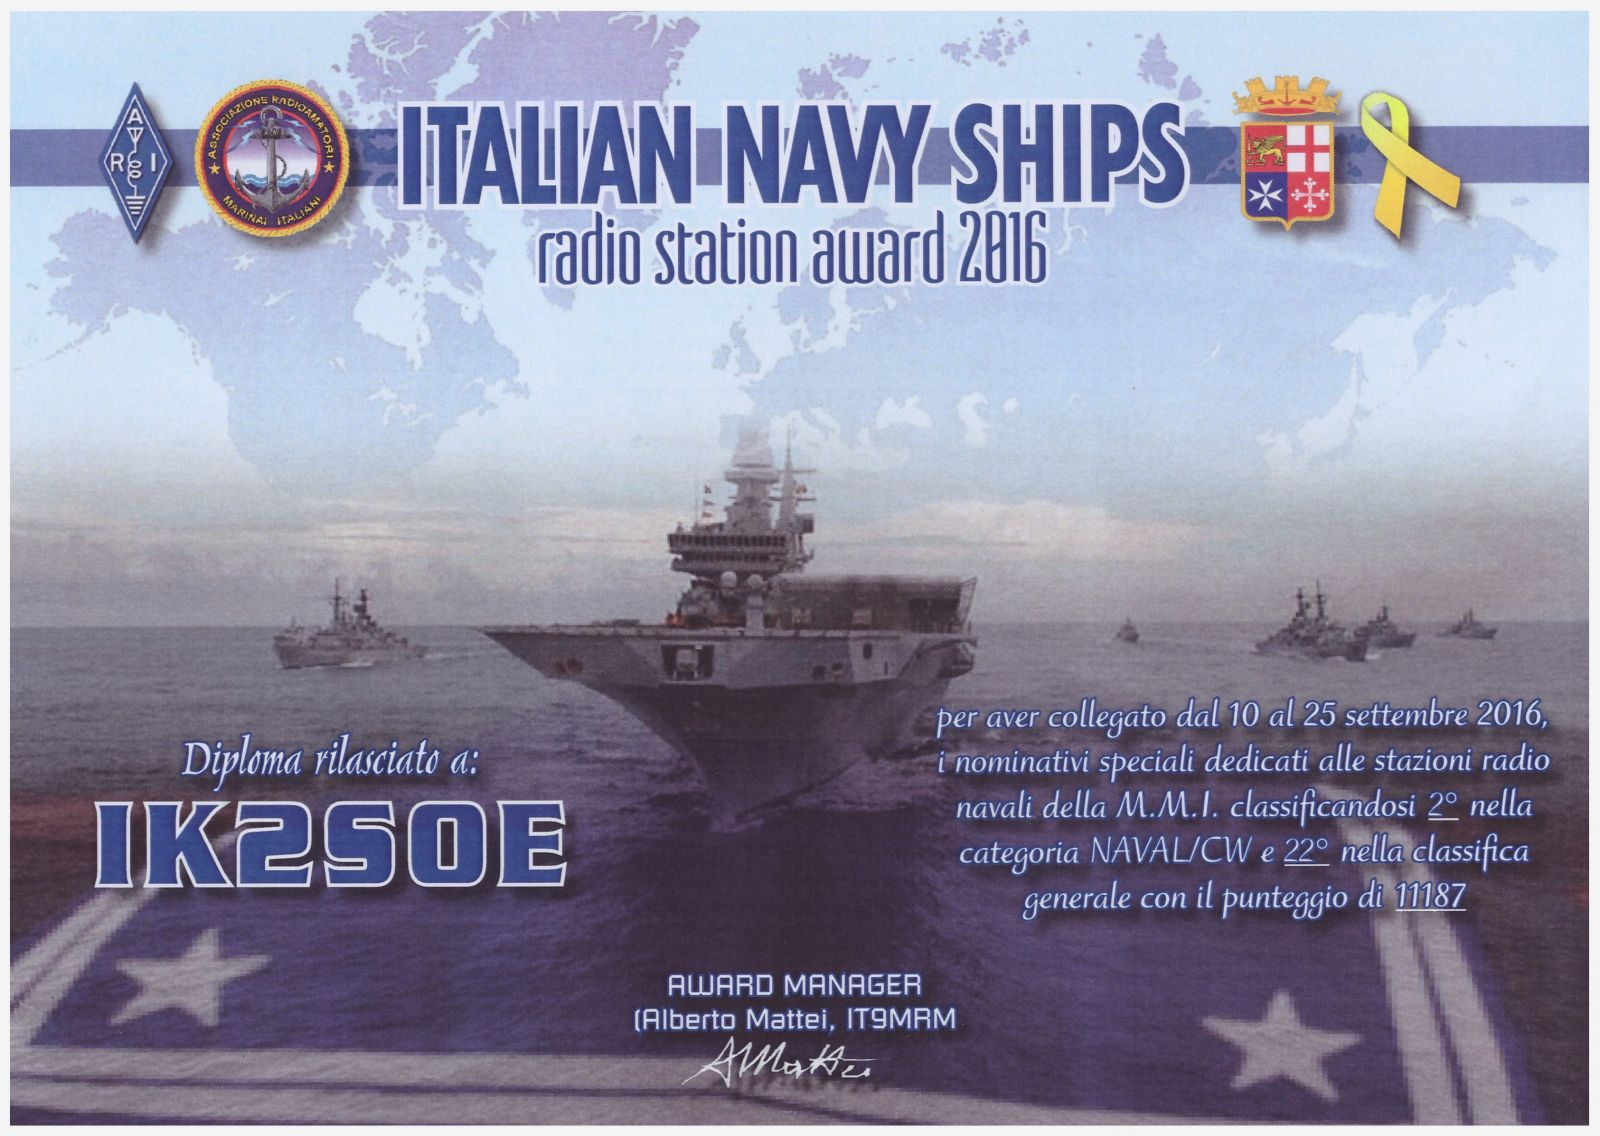 IT NAVY SHIPS 2016 AWARD